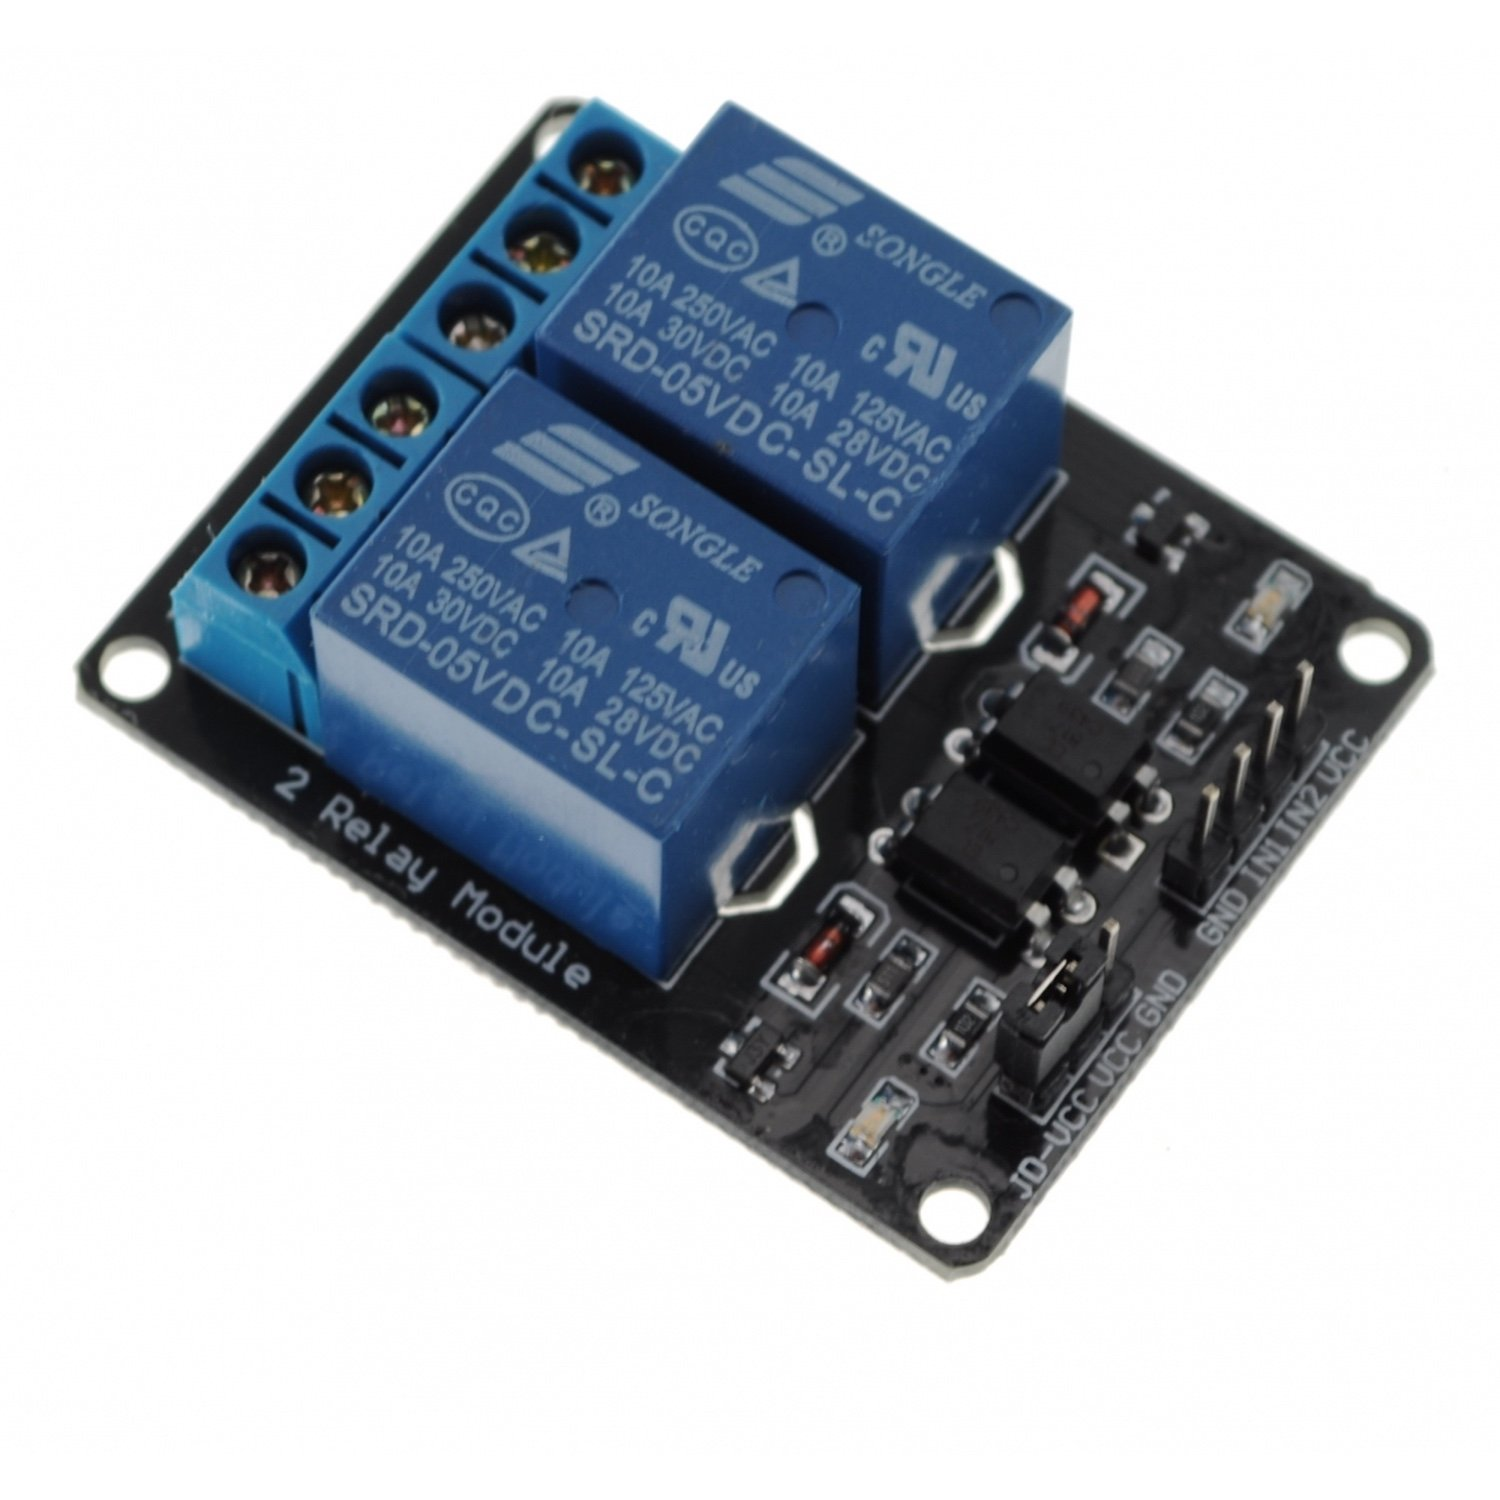 2-Channel 5V Relay Module for Arduino DSP AVR PIC ARM [Arduino Compatible] relay shield v1 0 5v 4 channel relay module for arduino works with official arduino boards